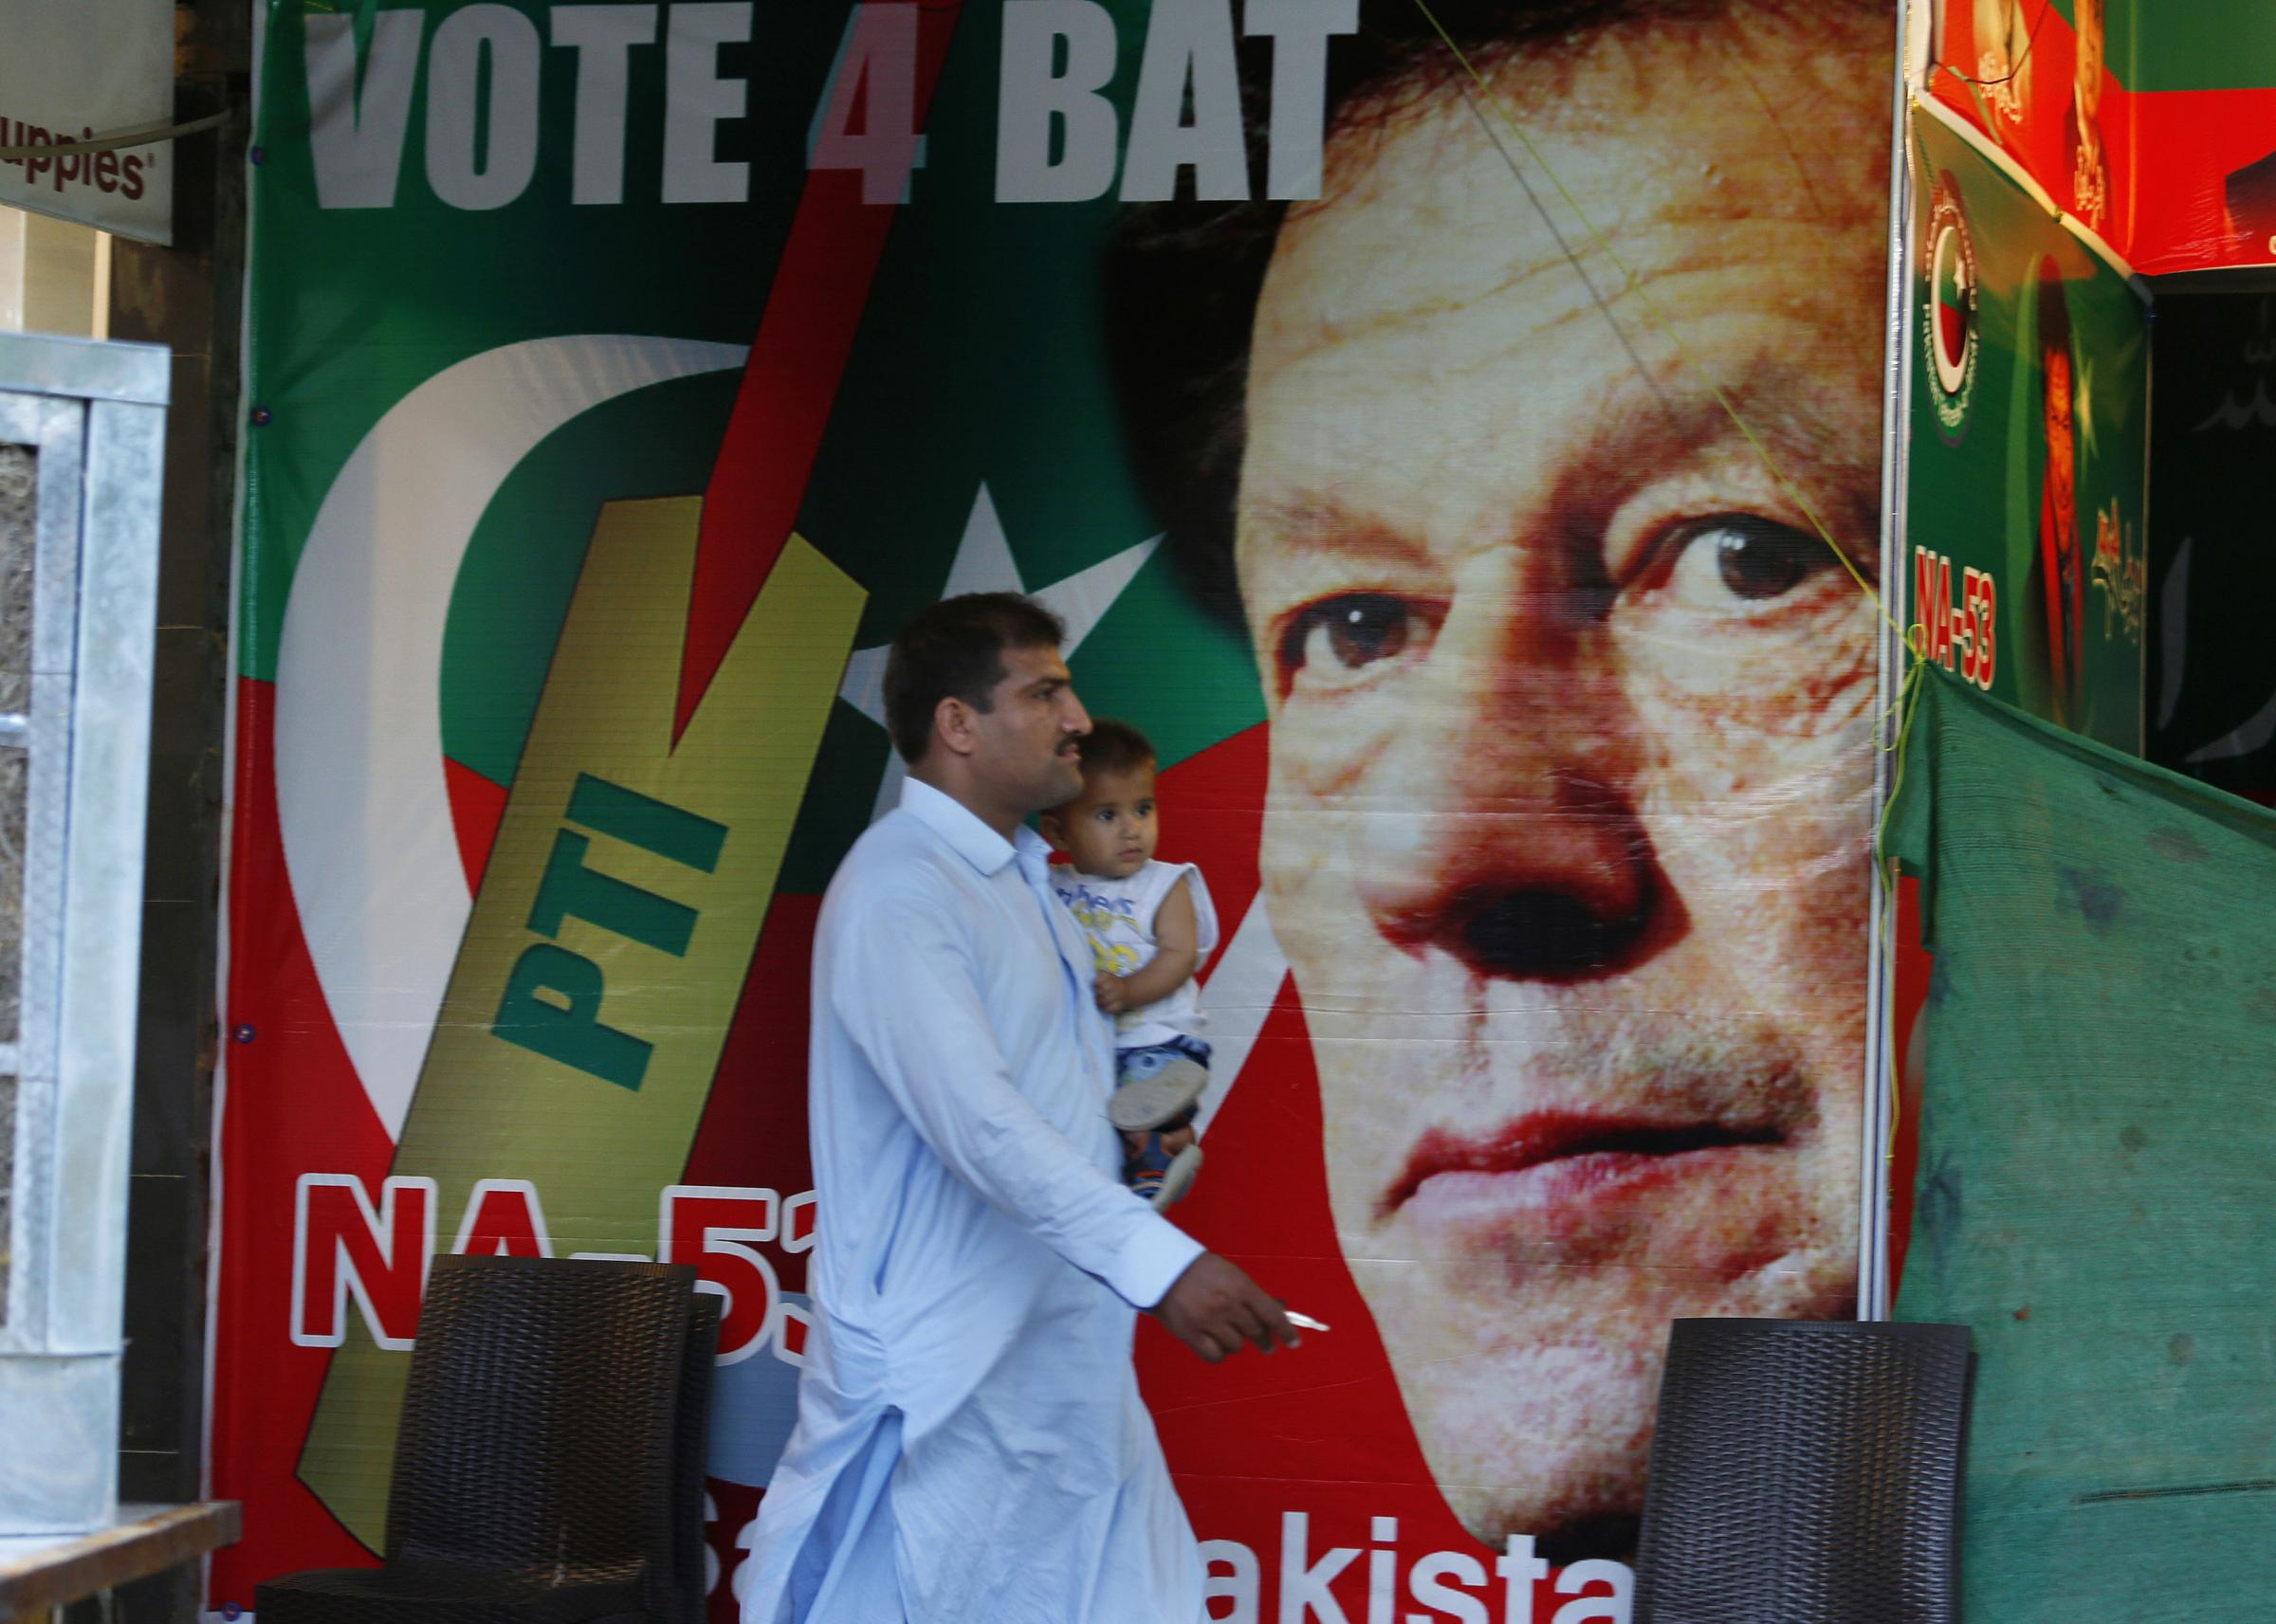 A man walks past a poster of Imran Khan, head of Pakistan Tehreek-e-Insaf party, at a market in Islamabad, Pakistan, Saturday, July 28, 2018.